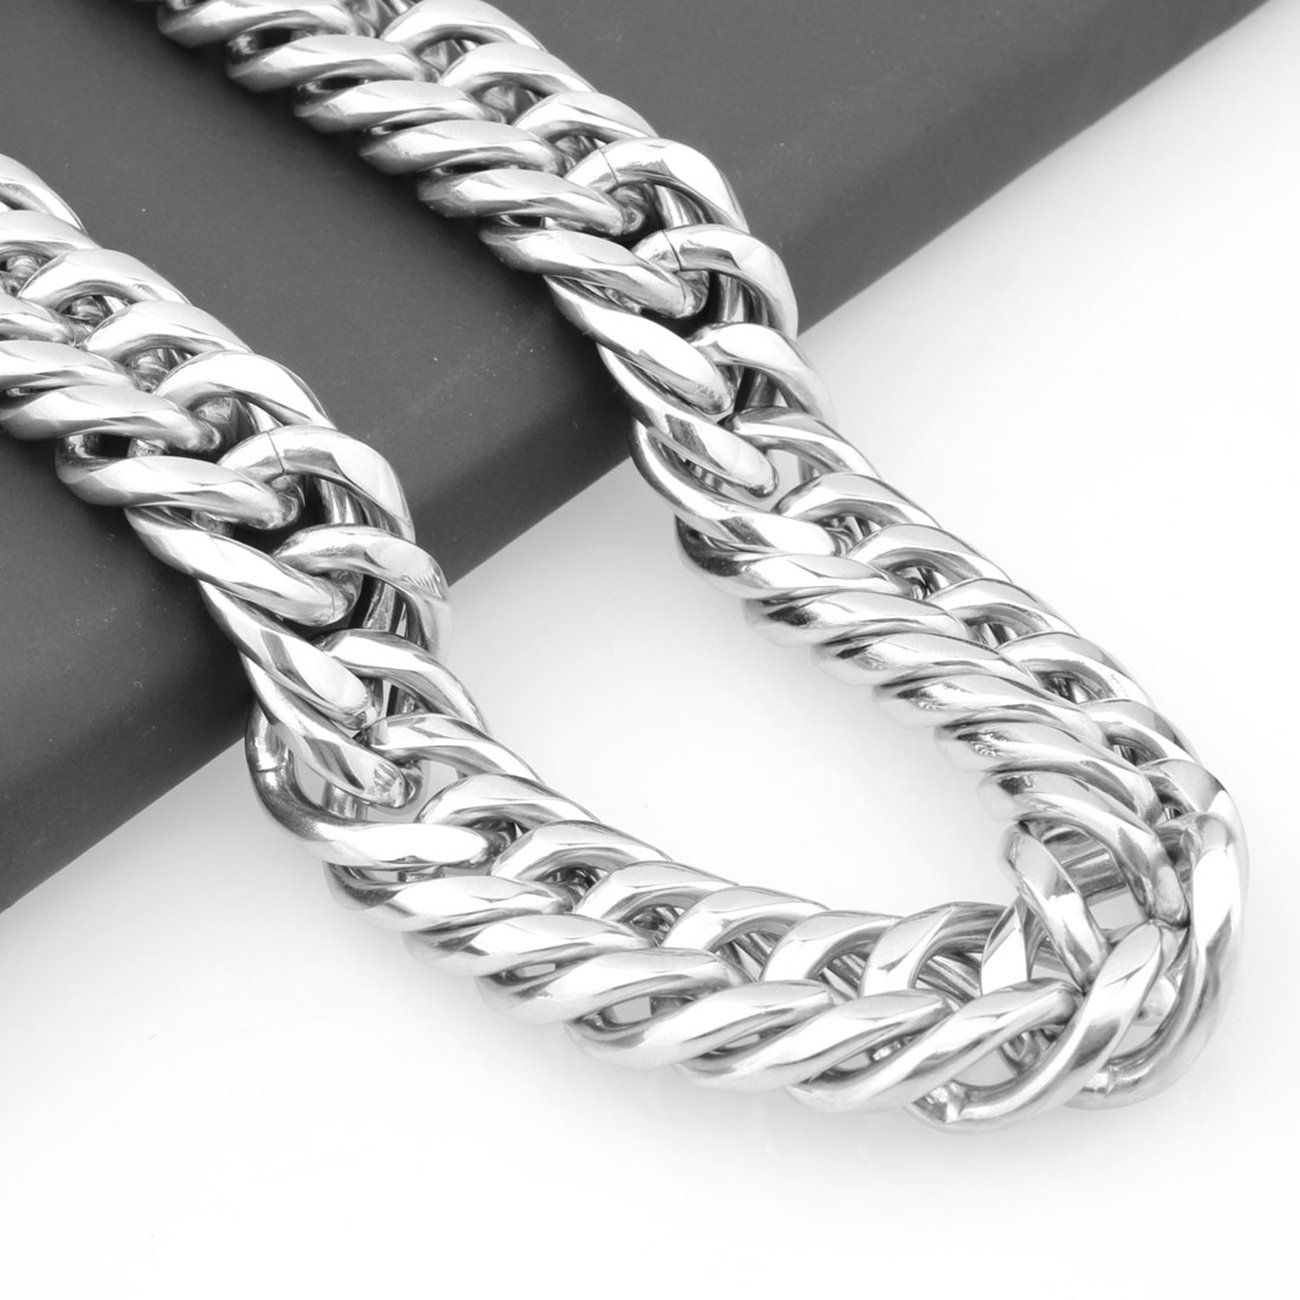 Innovative jewelry 22mm Heavy Silver Tone Stainless Steel Curb Link Chain Mens Necklace Bracelet,8-40